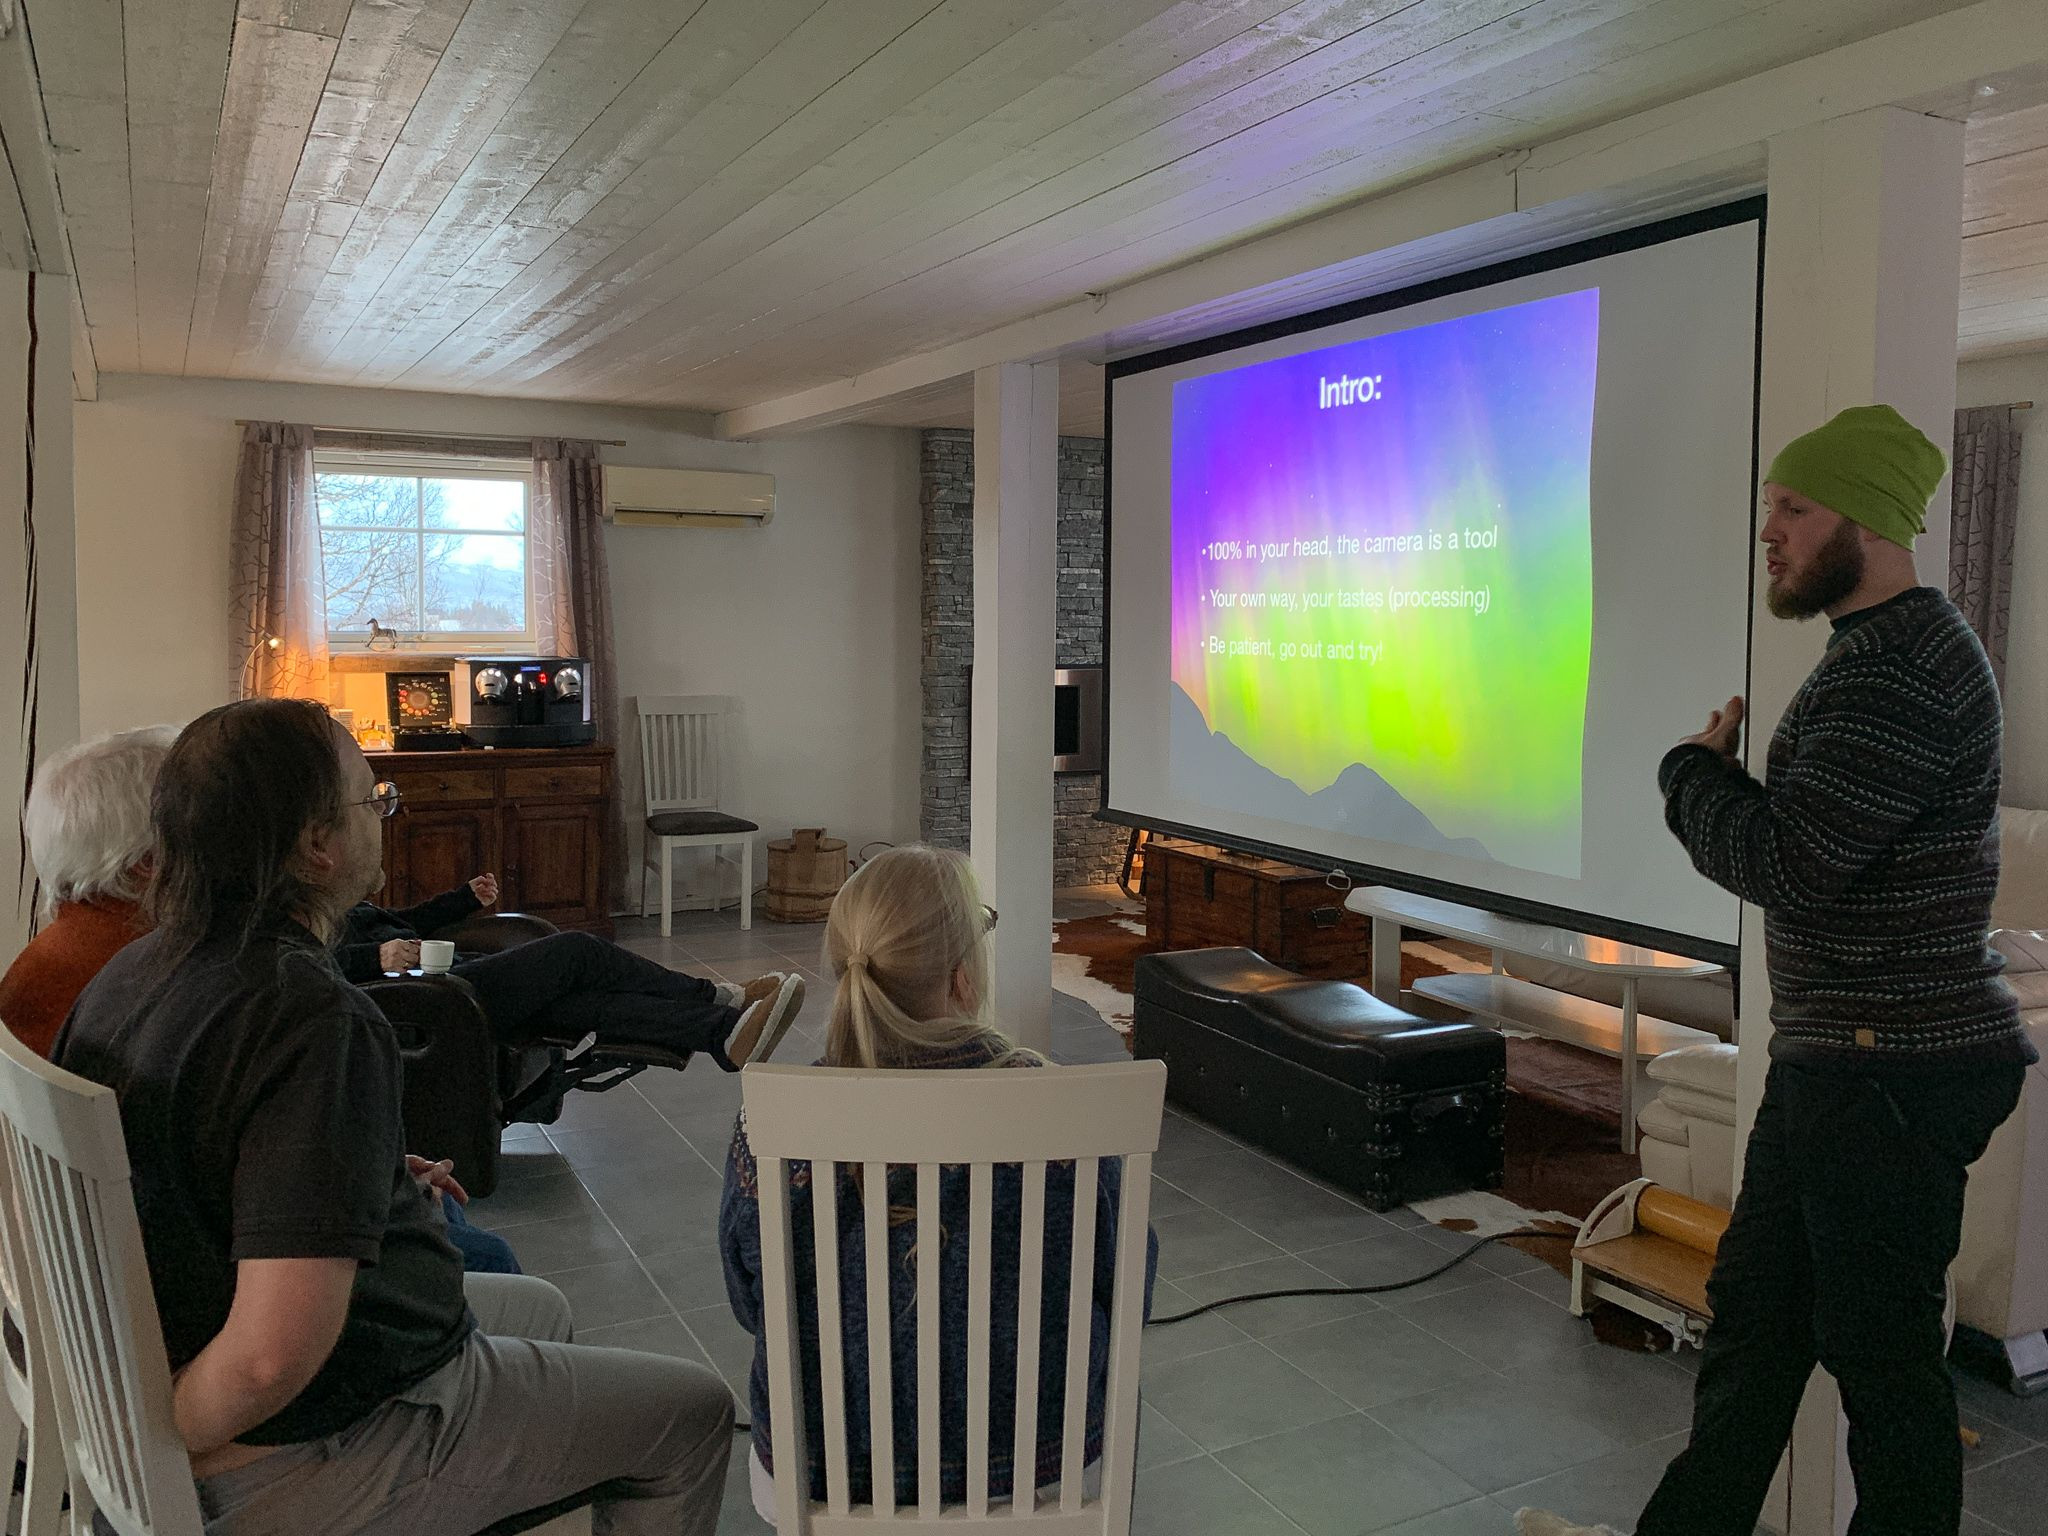 Aurora Science & Chasing Lecture